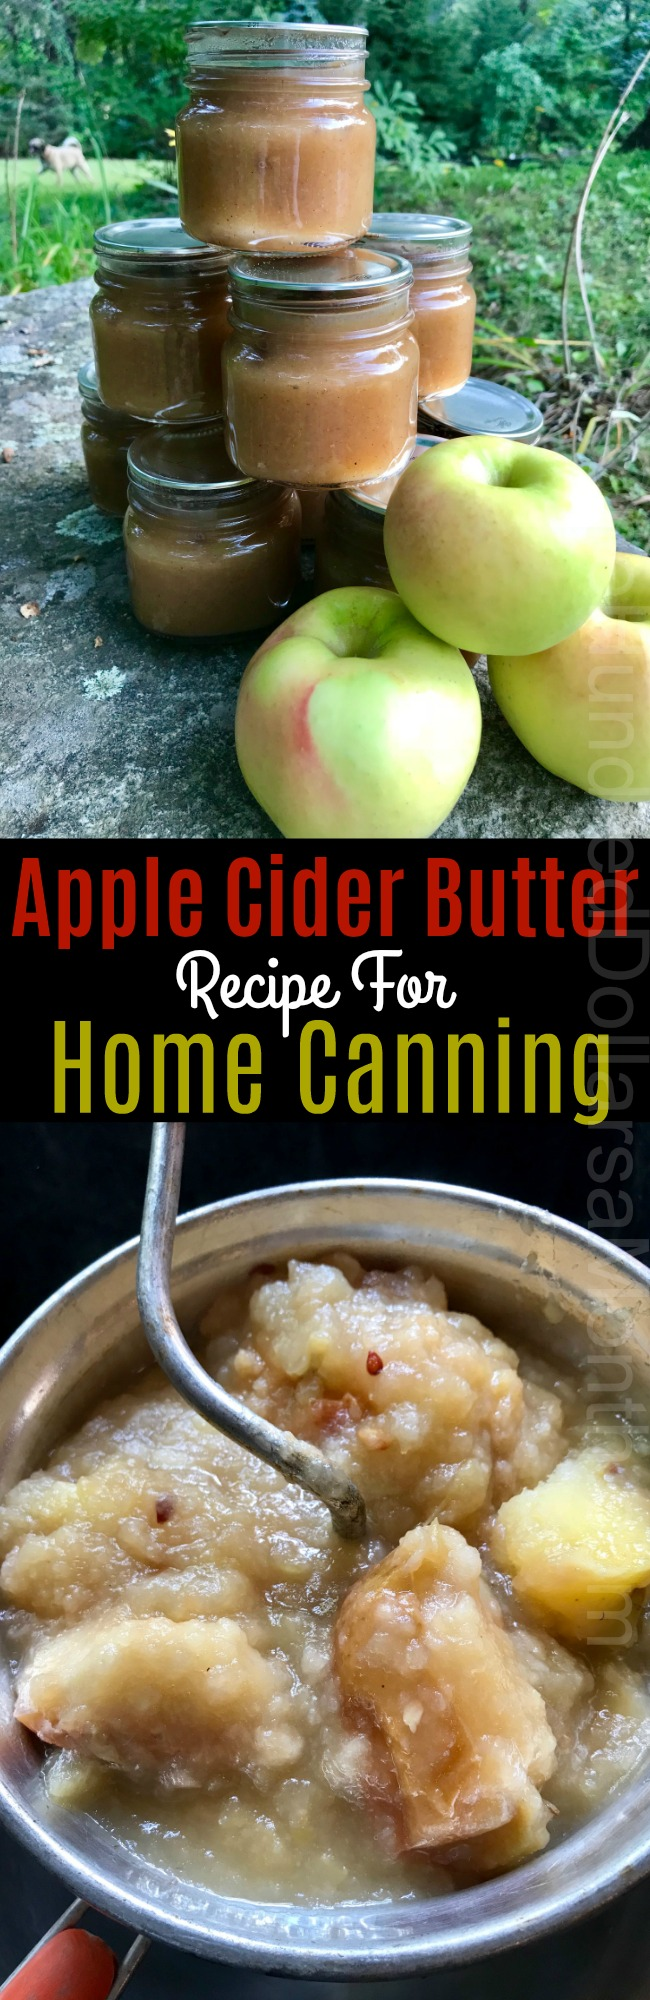 Apple Cider Butter Recipe for Home Canning